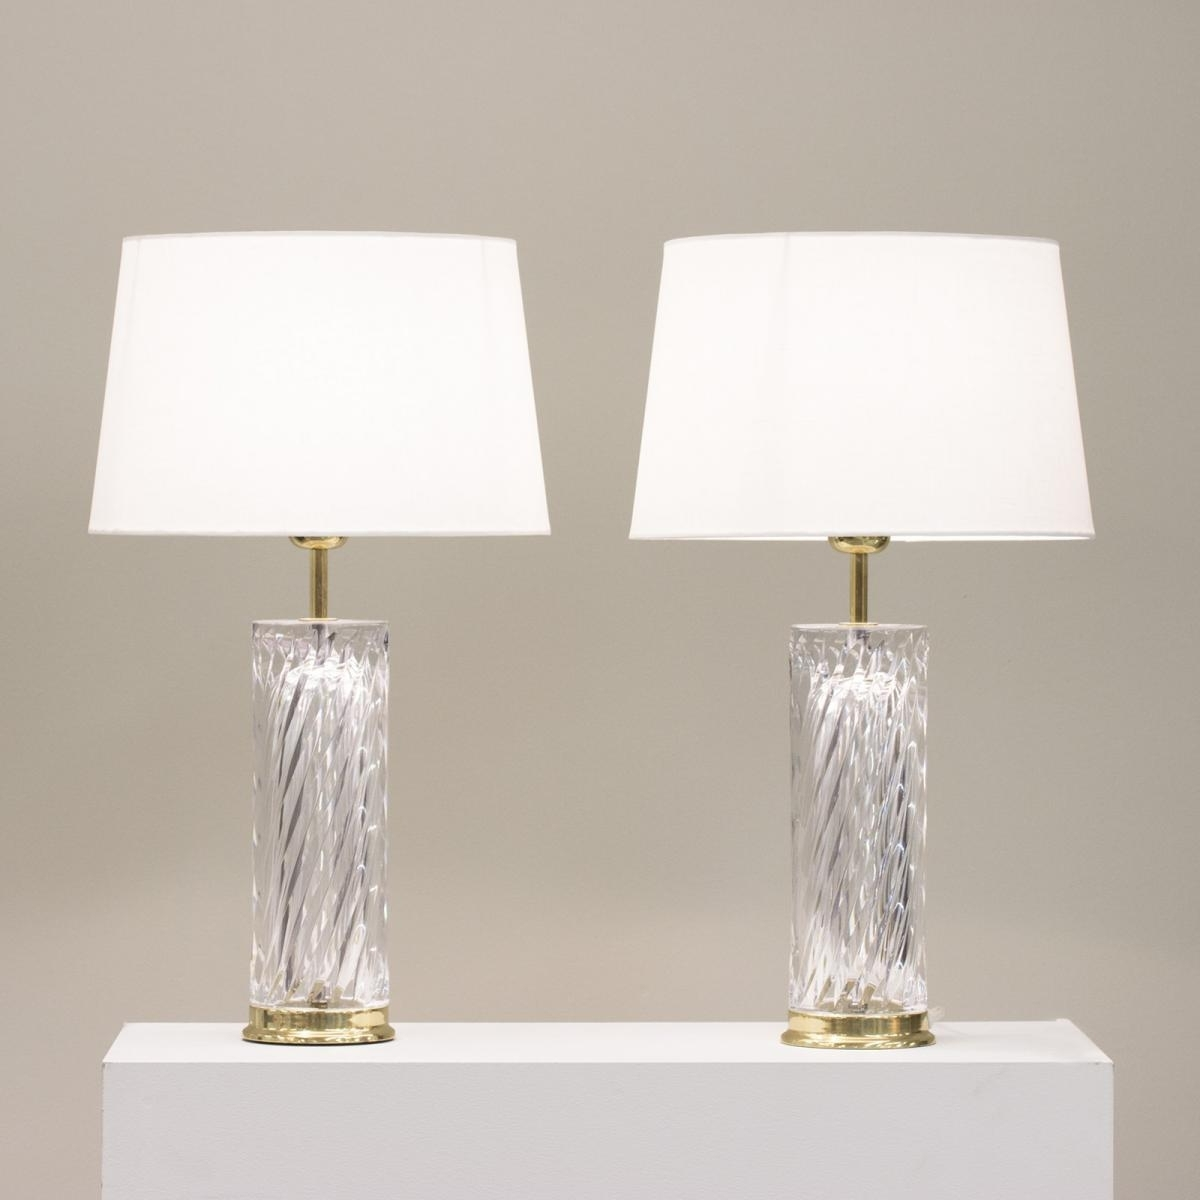 Preferred Set Of 2 Living Room Table Lamps Regarding Top 58 Superb Tall Crystal Table Lamps Floor Lamp On Sale For Living (View 4 of 20)